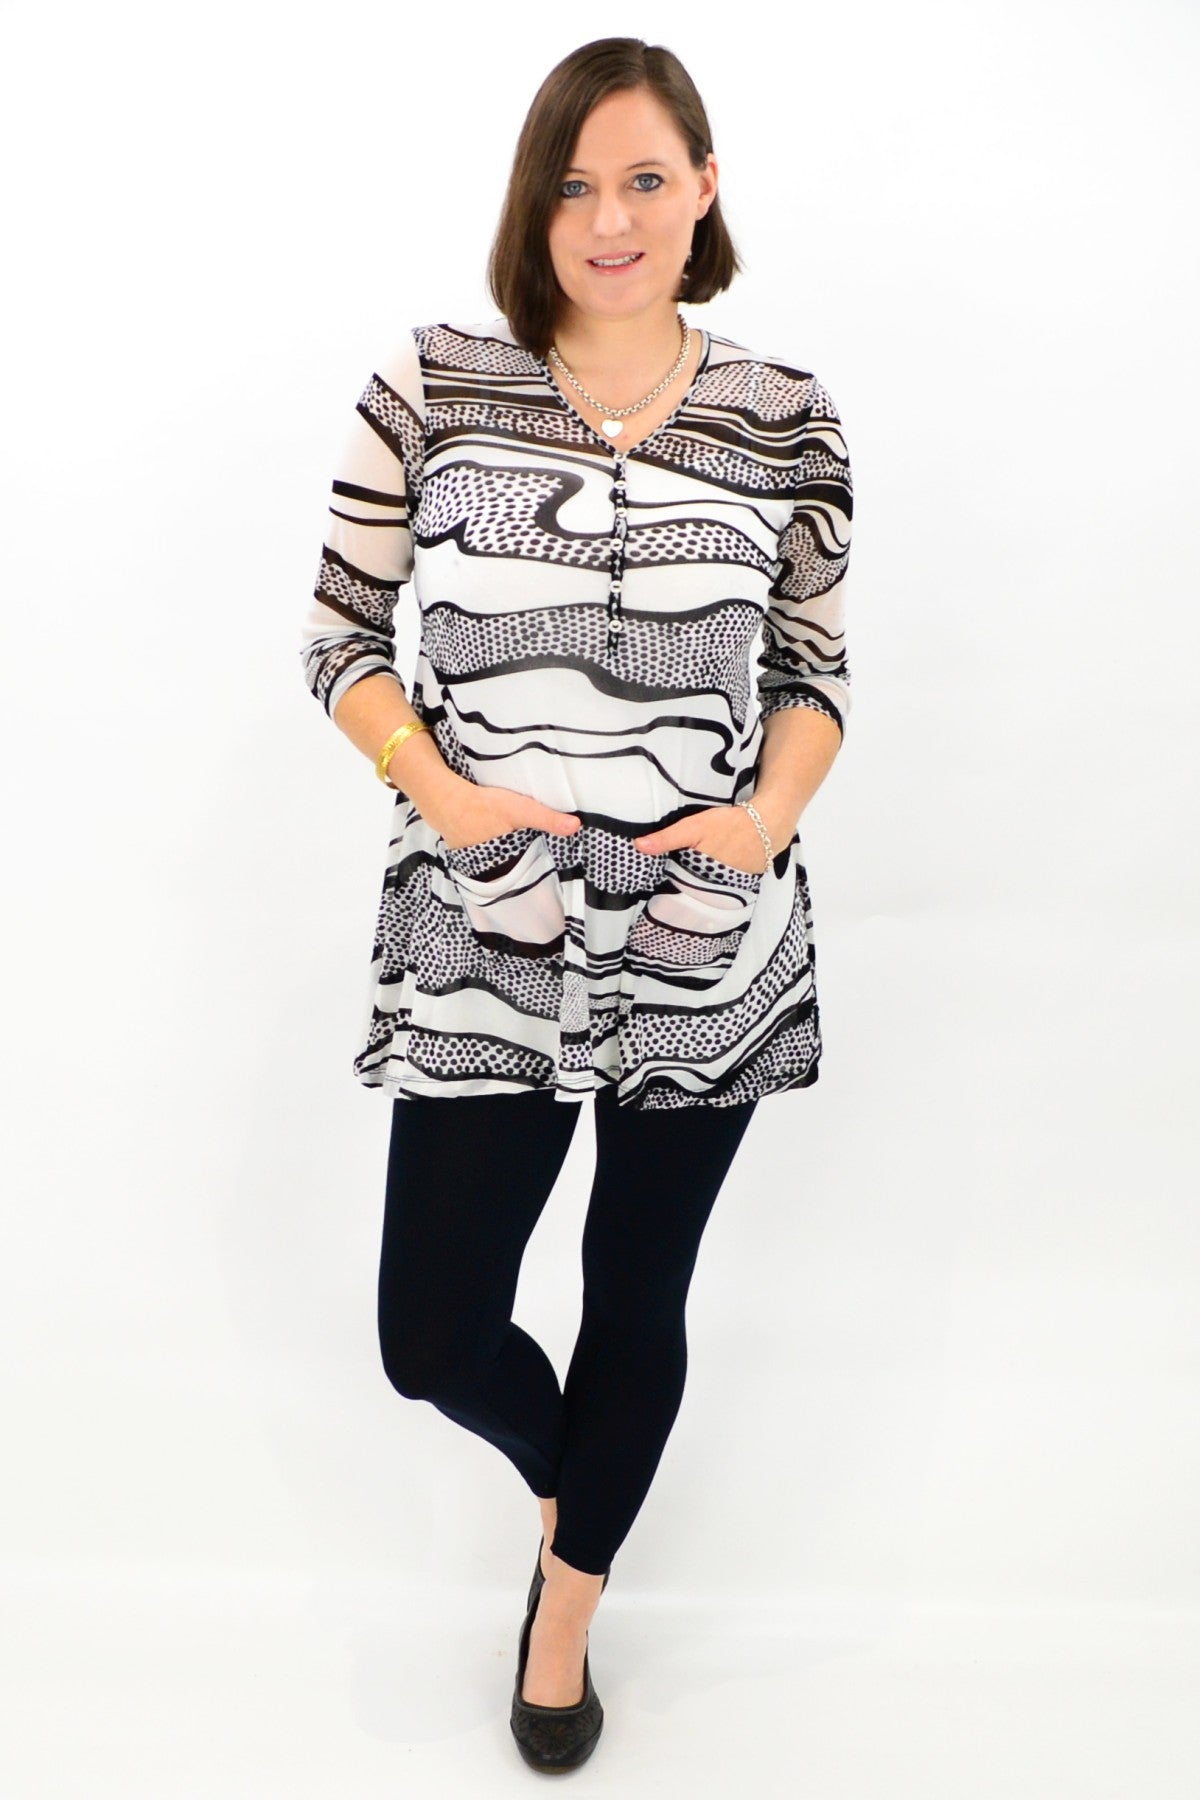 tunic dresses and tops by ilovetunics